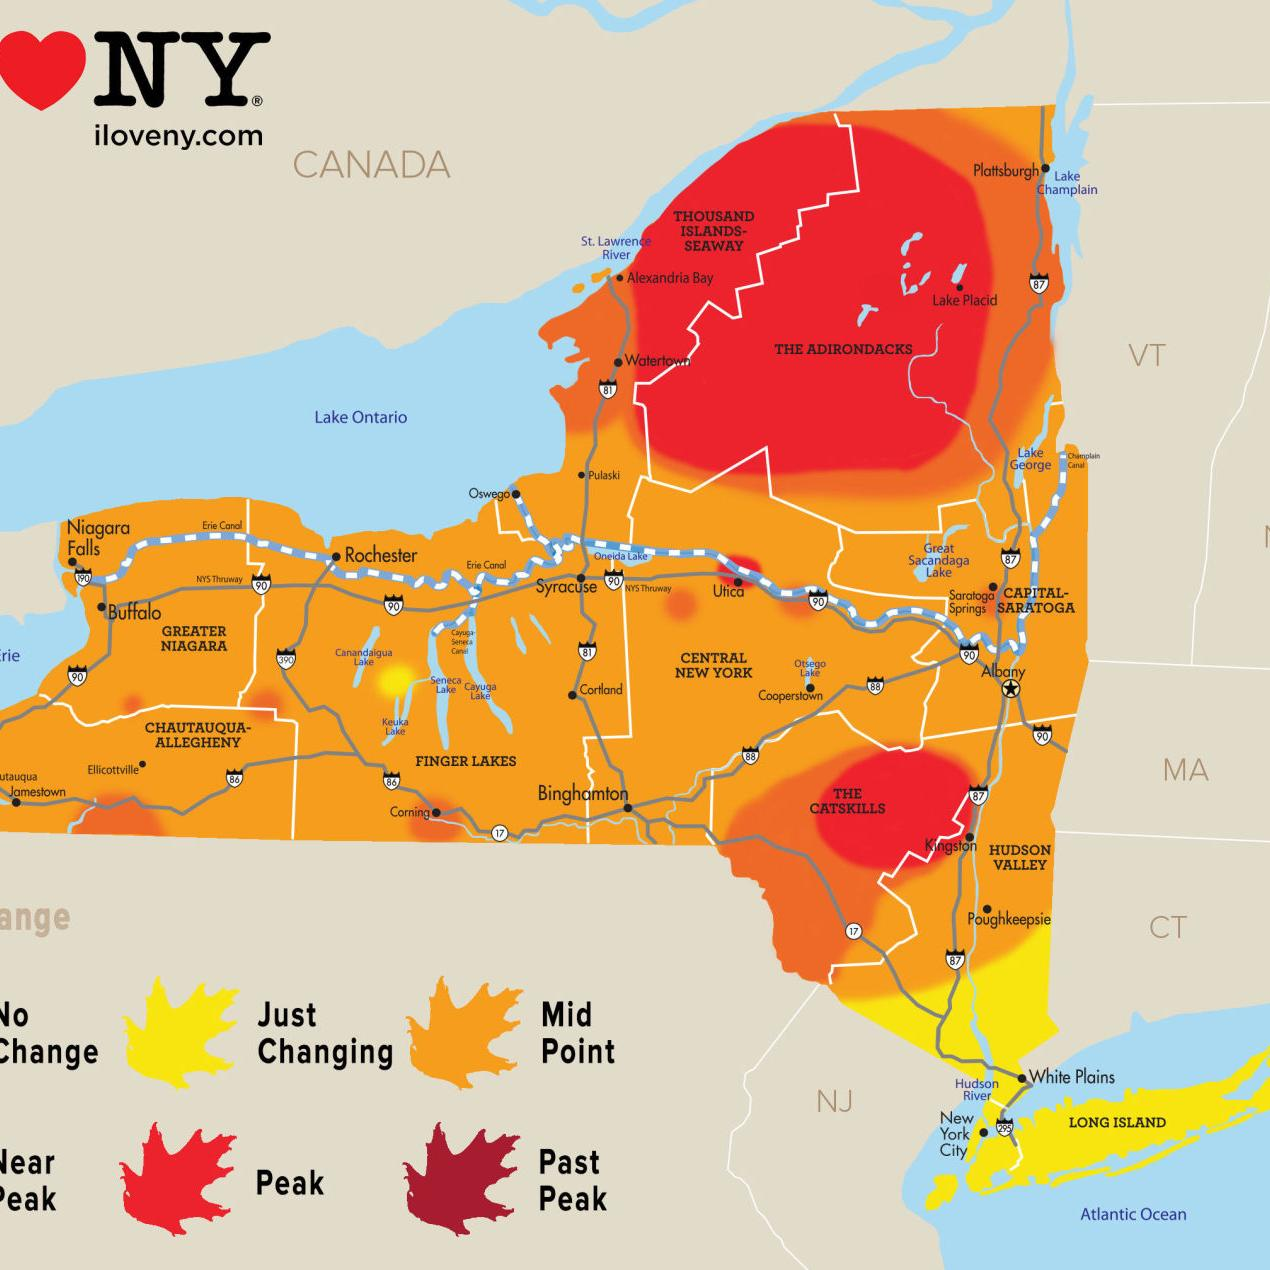 New York State Fall Foliage Report For Week Of Oct 10